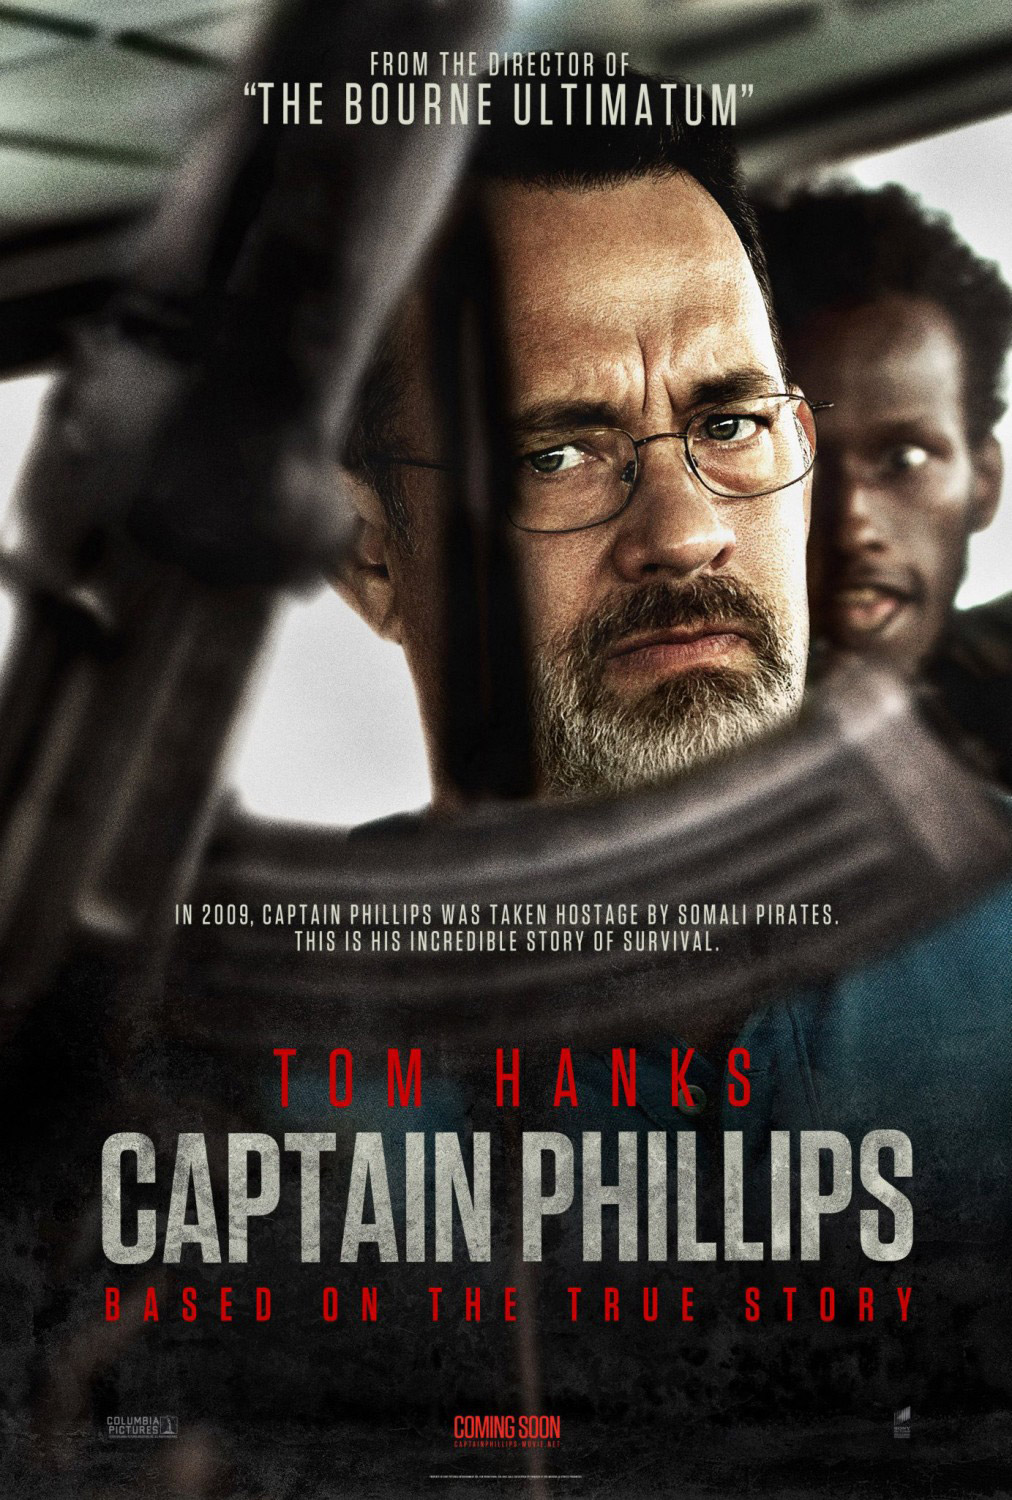 Notorious photobomber returns for Captain Phillips poster ...